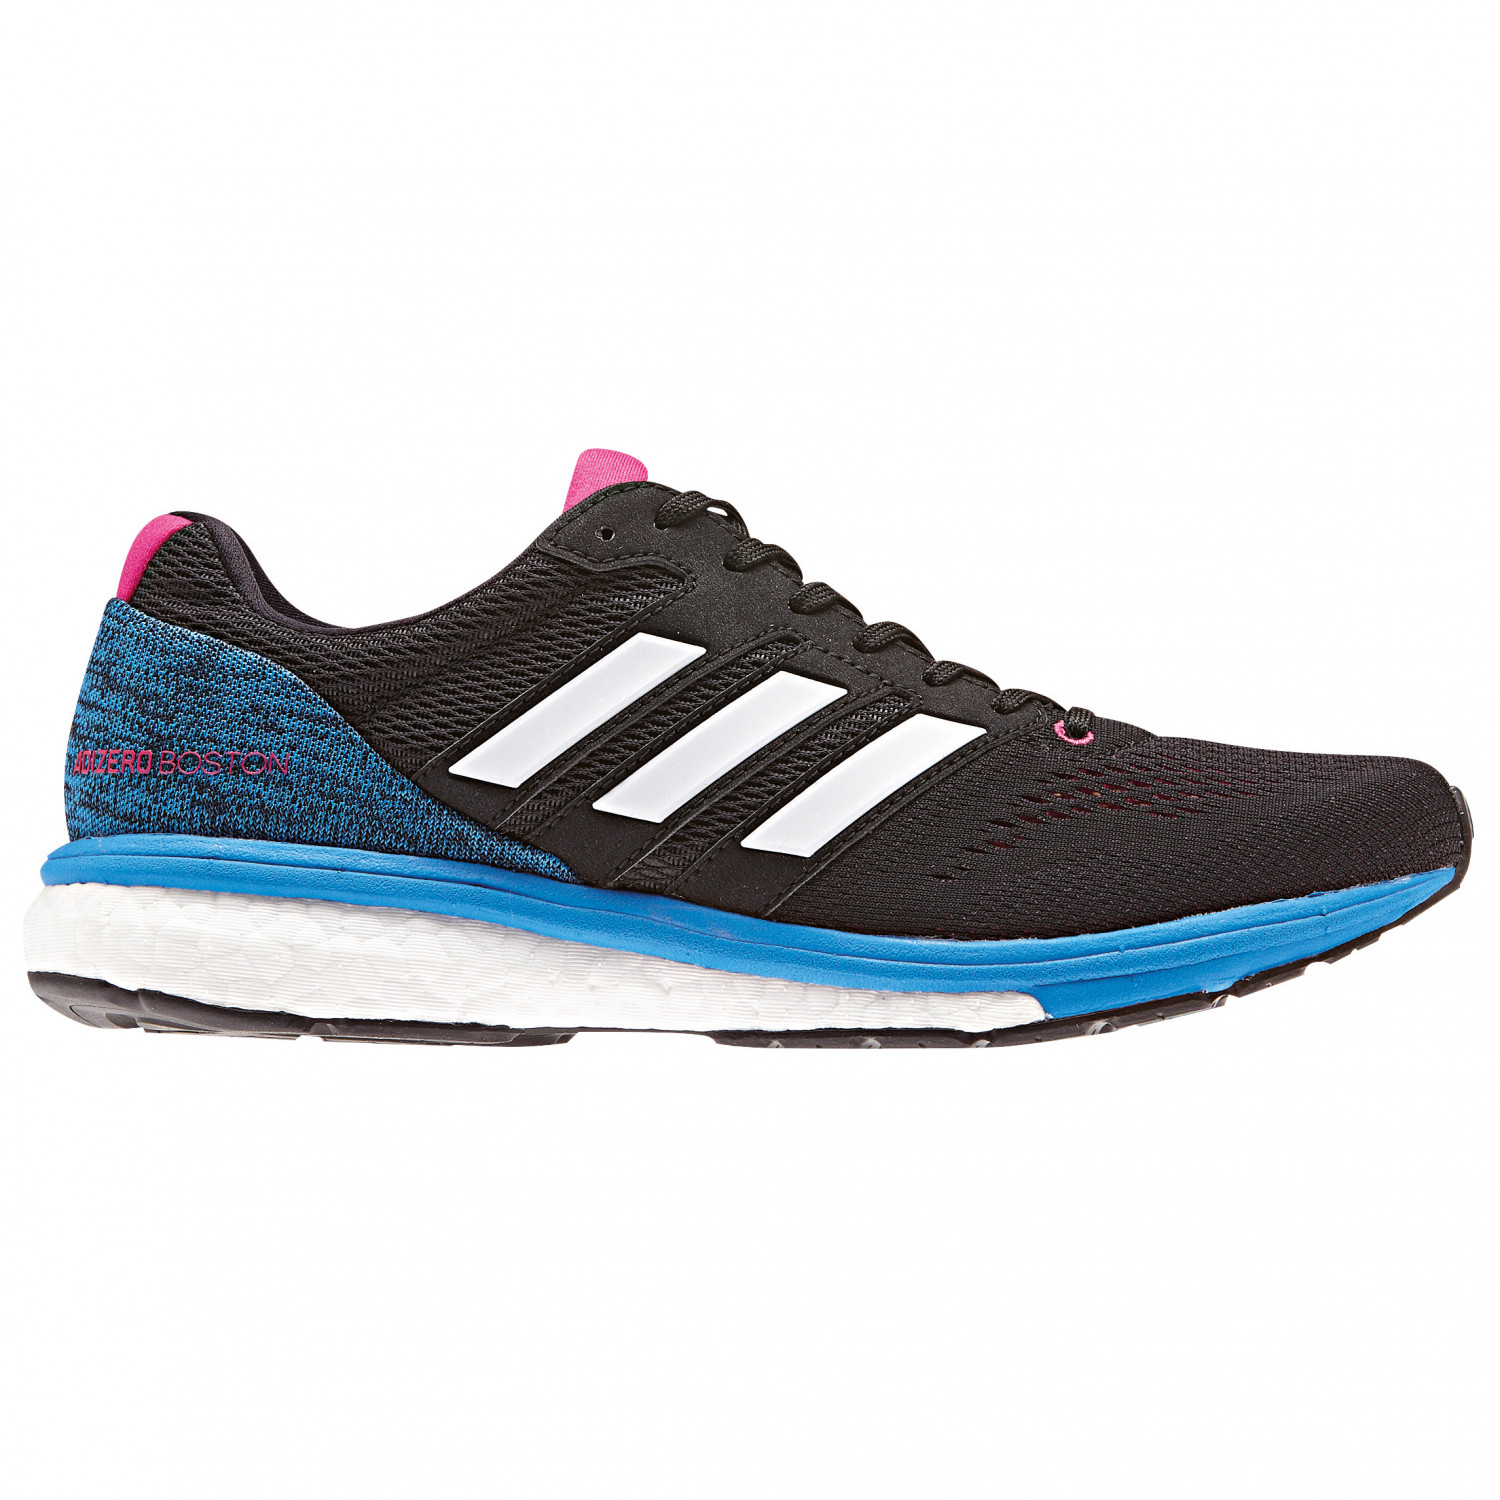 designer fashion 6d531 e7717 adidas - Womens Adizero Boston 7 - Runningschuhe ...